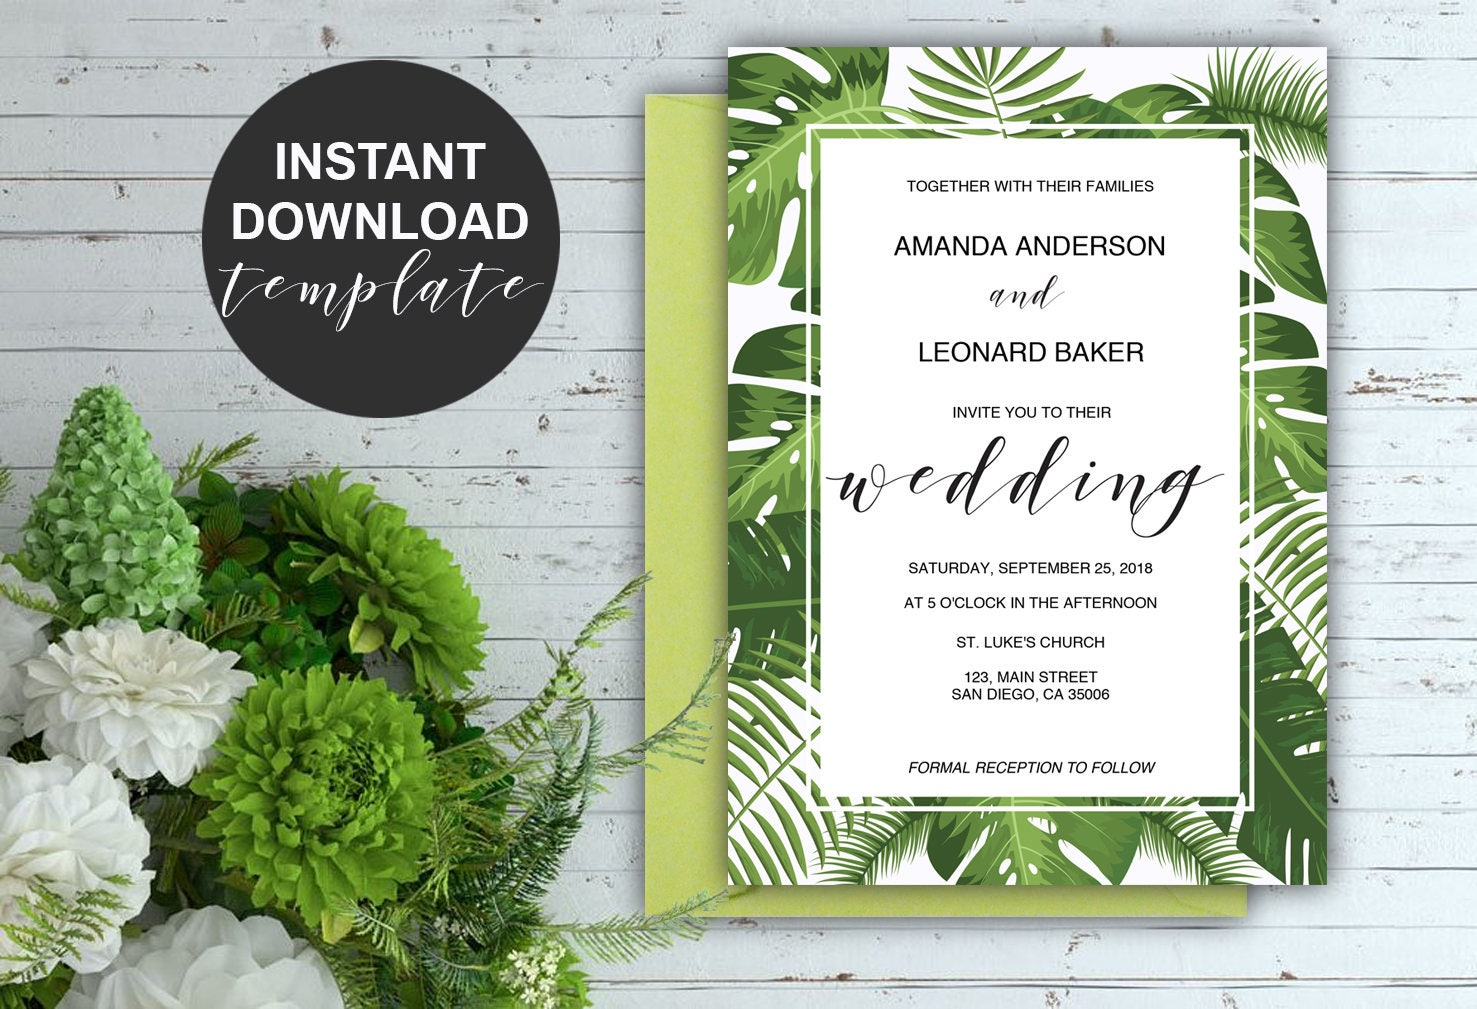 Tropical Leaves Wedding Invitation Suite Greenery Invitation Template Instant Download Printable Wedding Suite Pdf Editable Tpc Polish your personal project or design with these tropical leaves transparent png images, make it even more personalized and more attractive. redline design studio